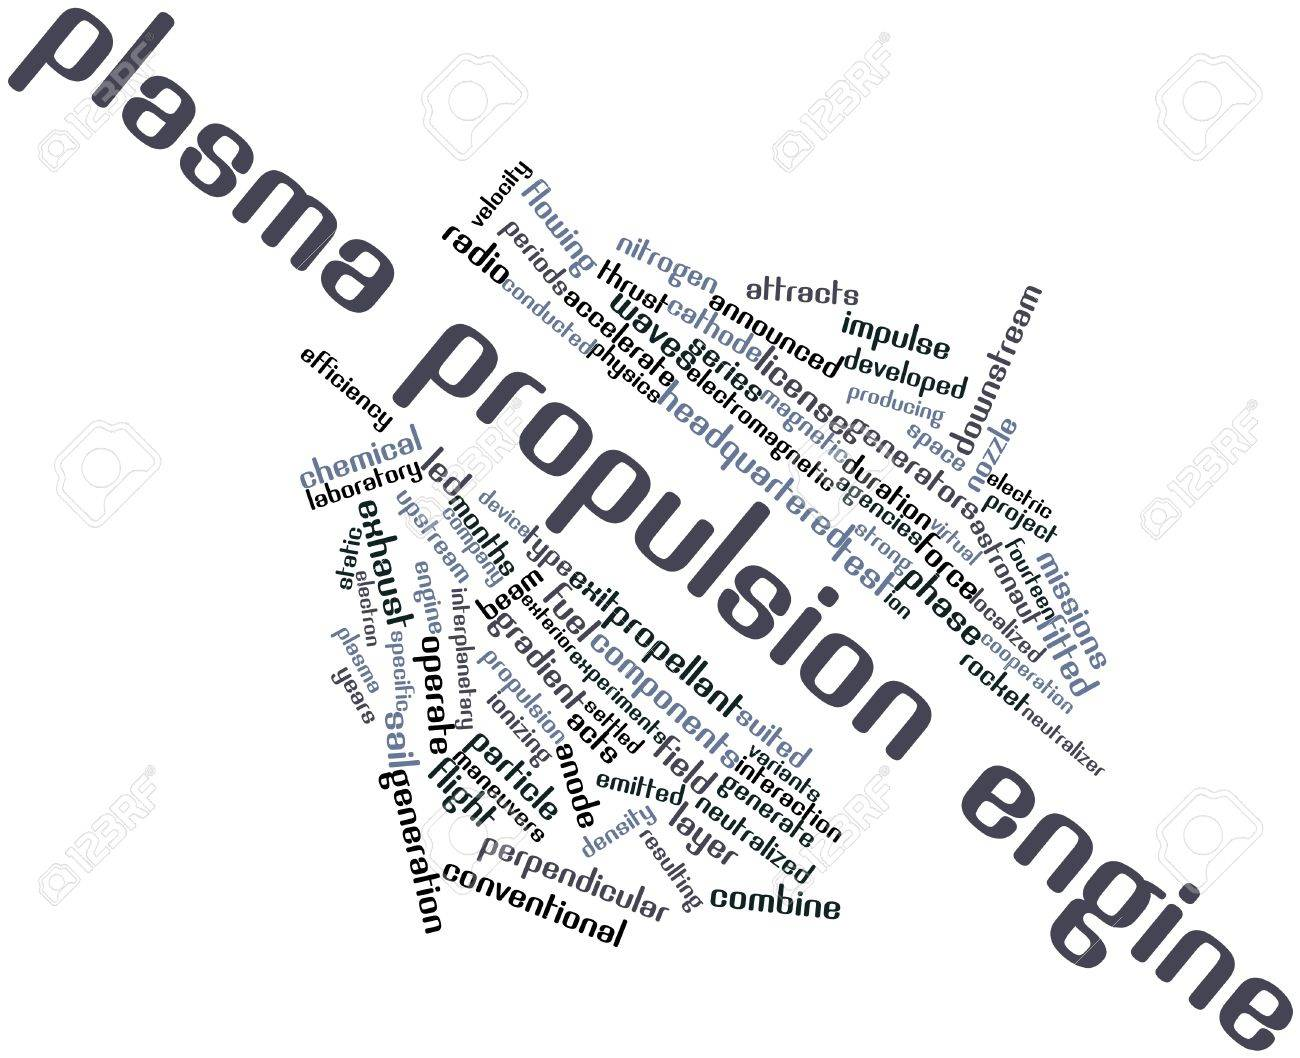 Abstract word cloud for Plasma propulsion engine with related